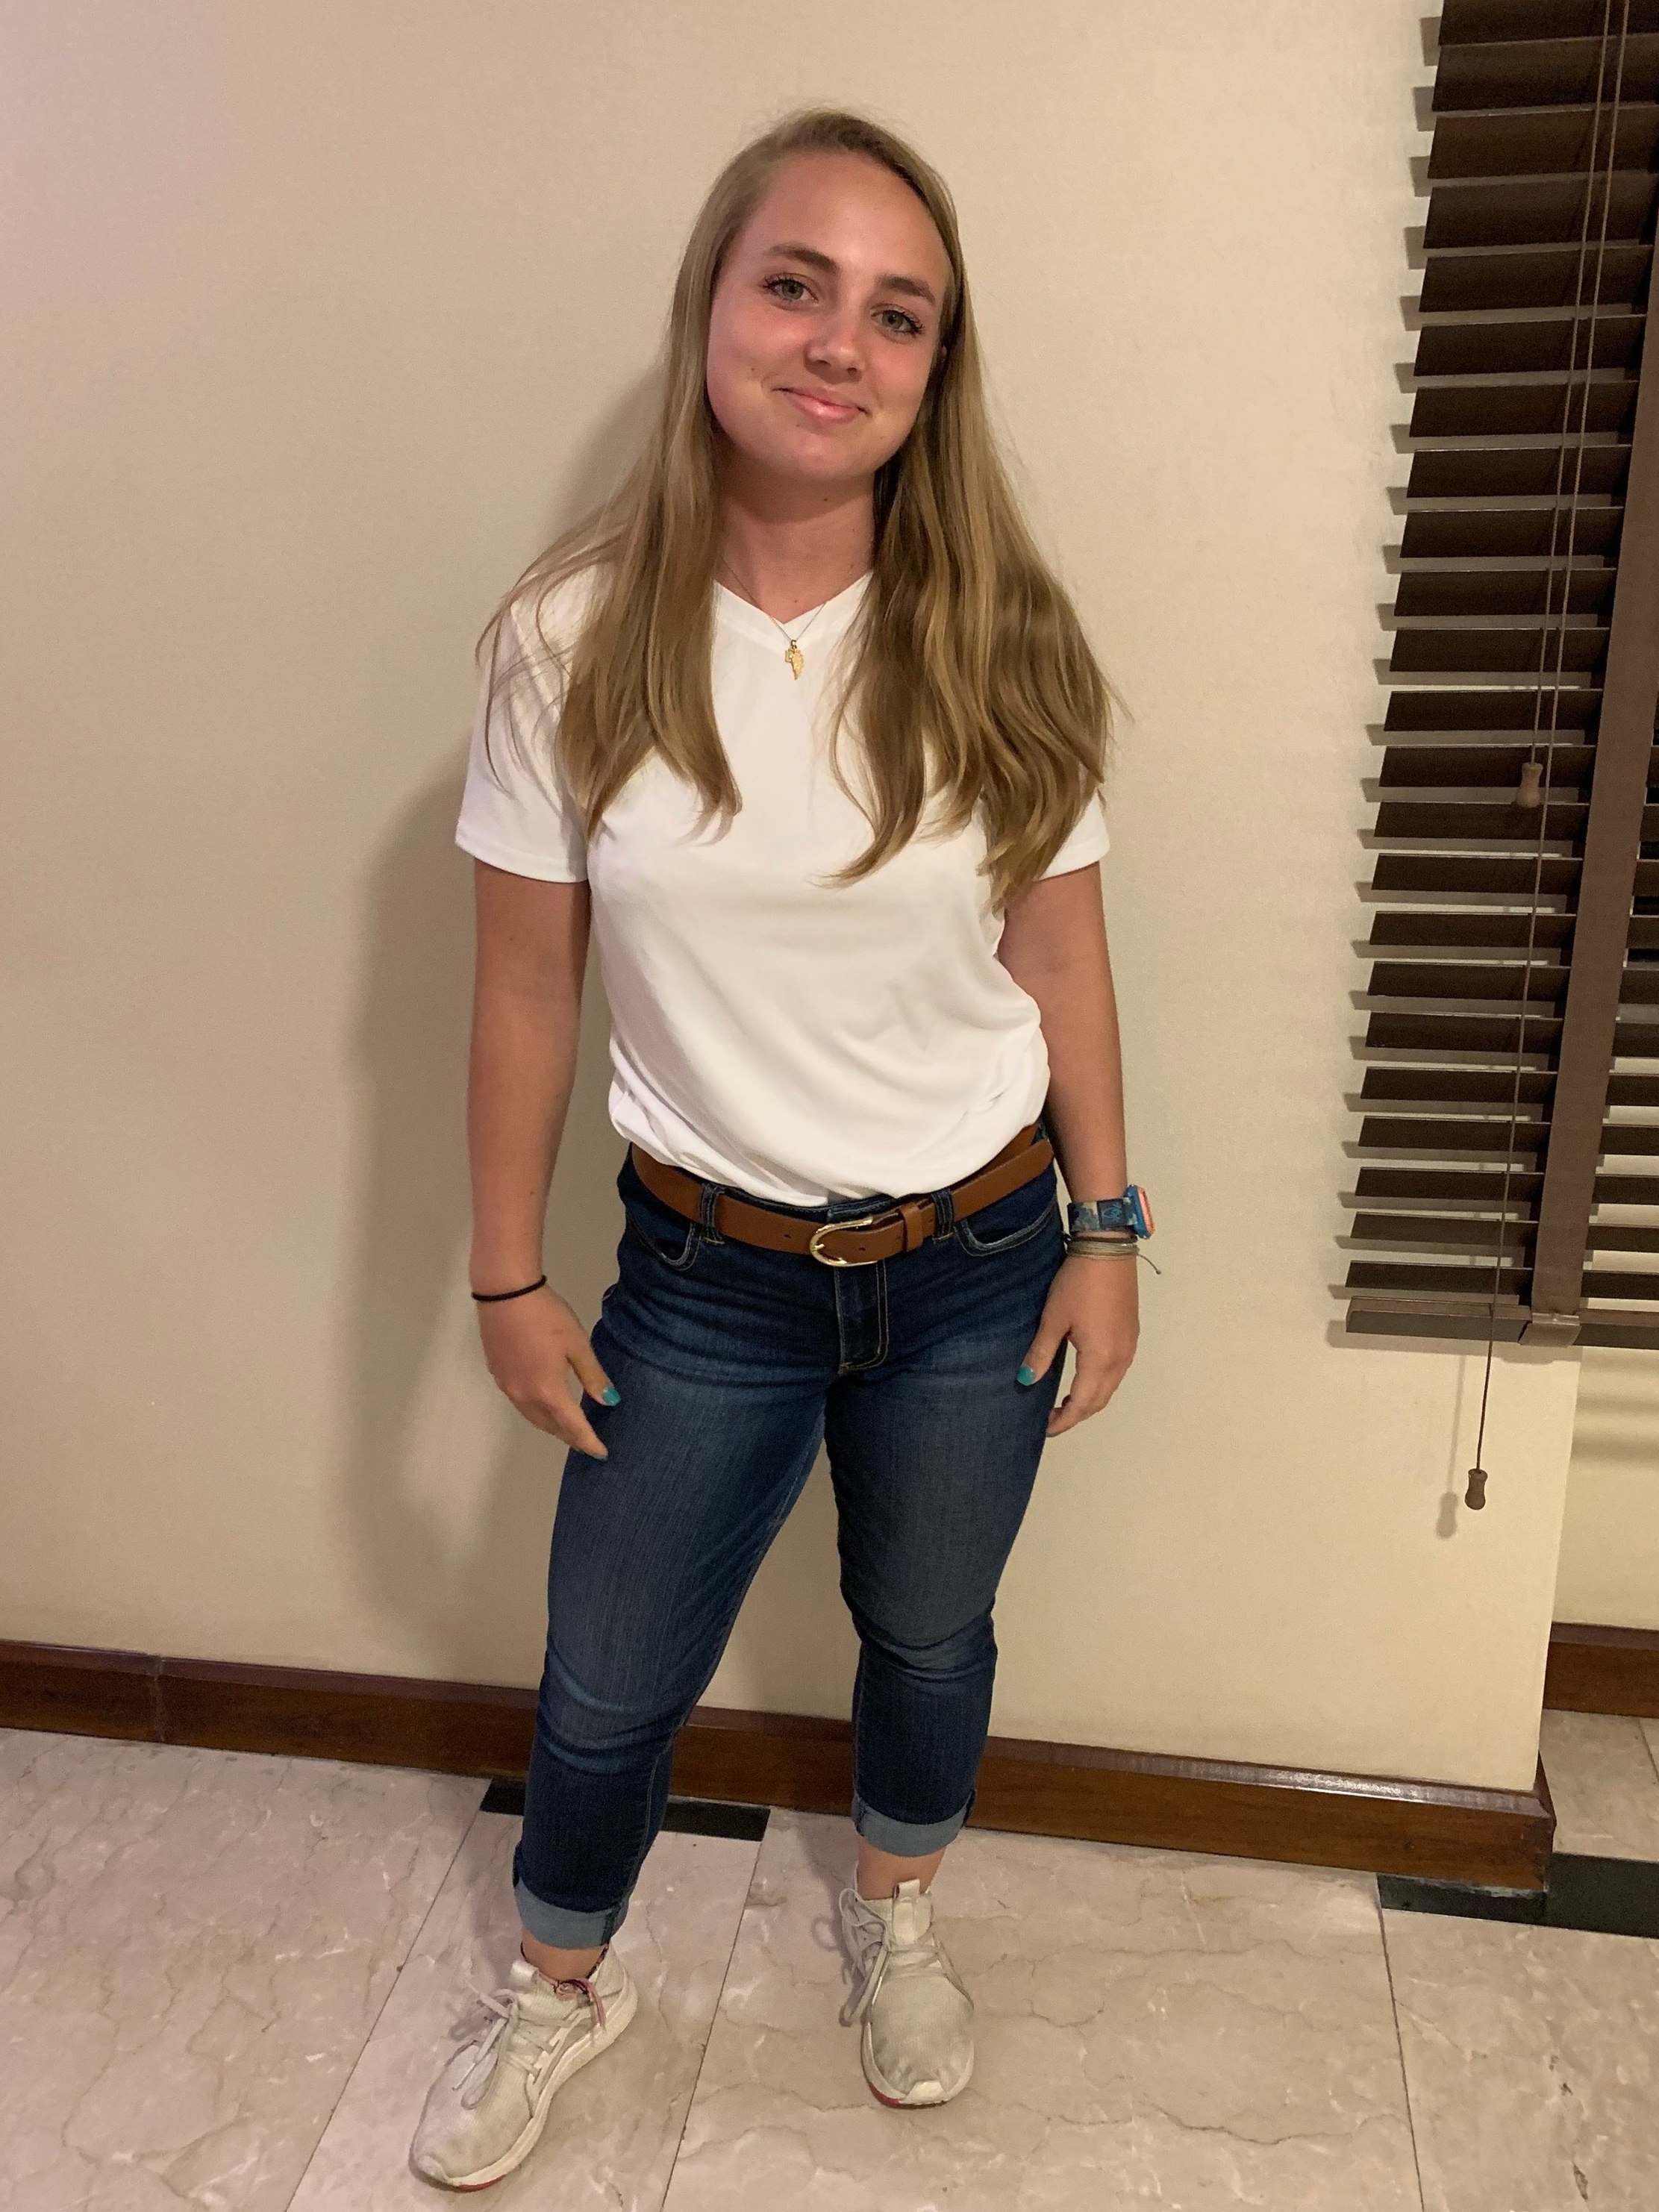 My sister does a great job of showing that you can be conservative and cute. The notable thing is to not show your shoulders. Photo credit: Jones, 2019